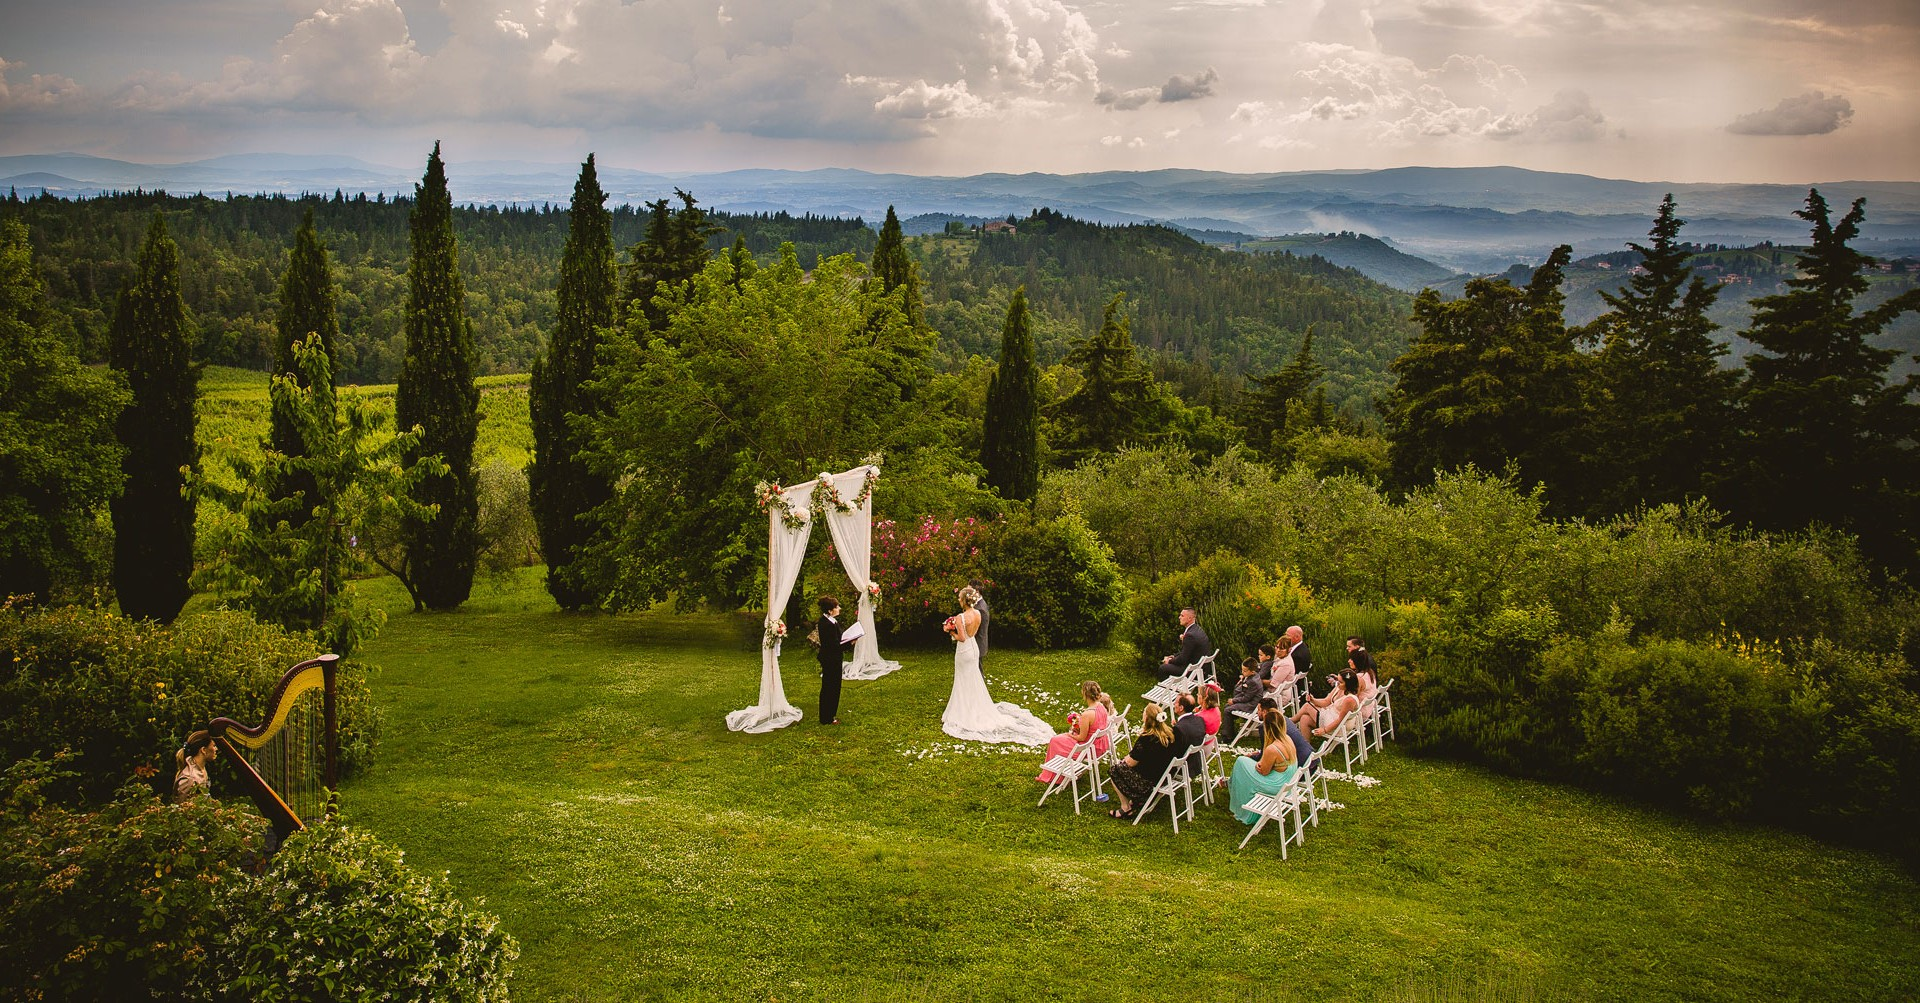 Miglior-wedding-photographer-in-Italia